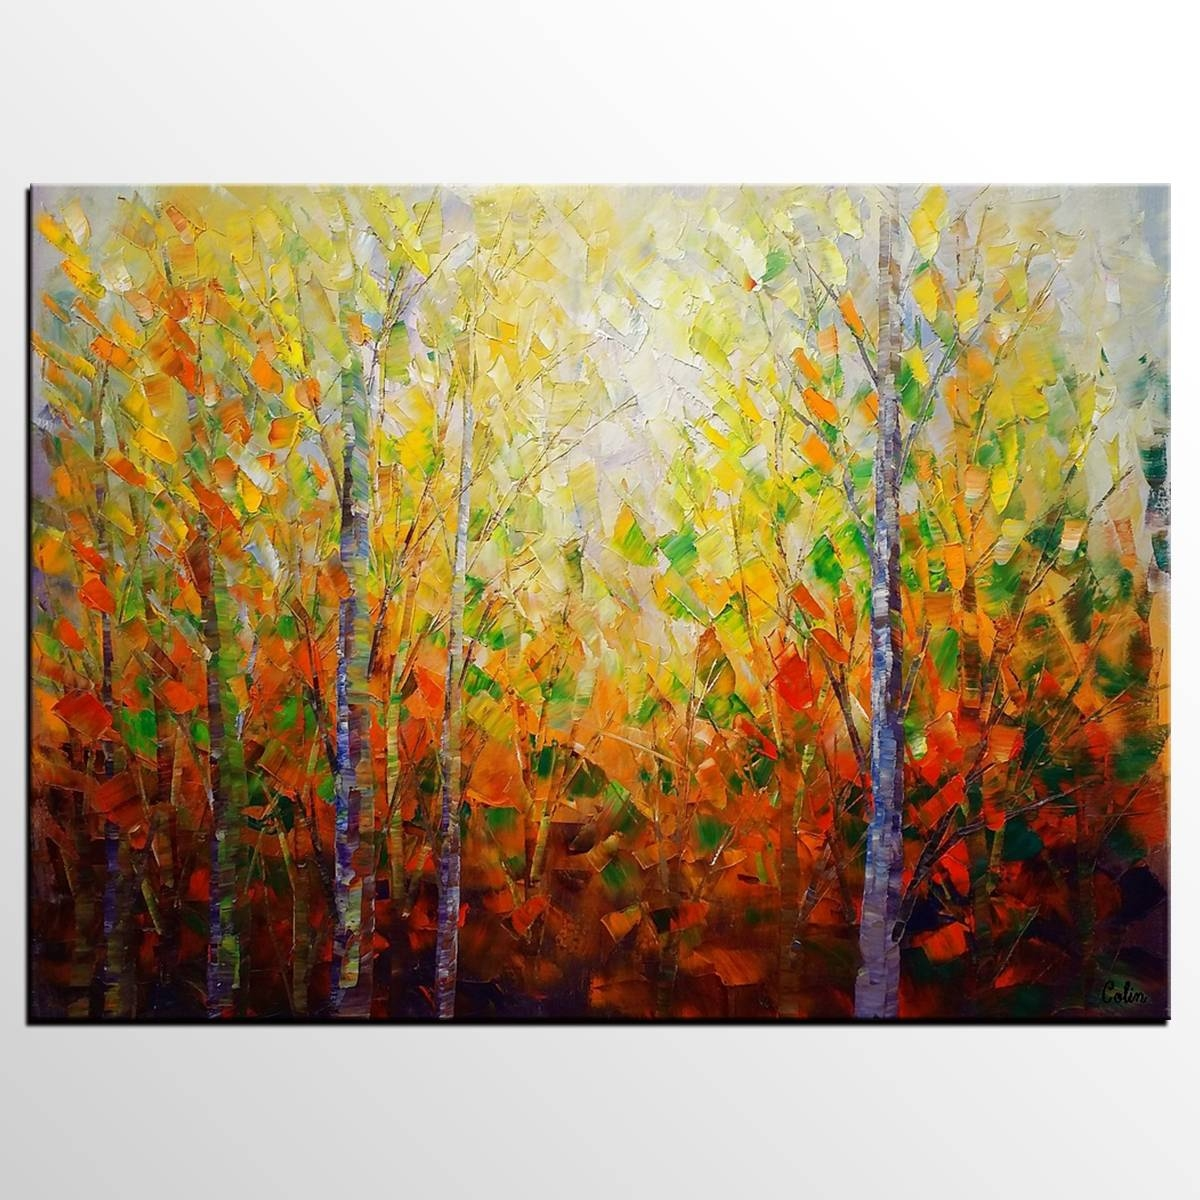 Autumn Tree Painting, Large Wall Art, Landscape Painting, Large Inside Latest Oil Painting Wall Art On Canvas (View 5 of 20)